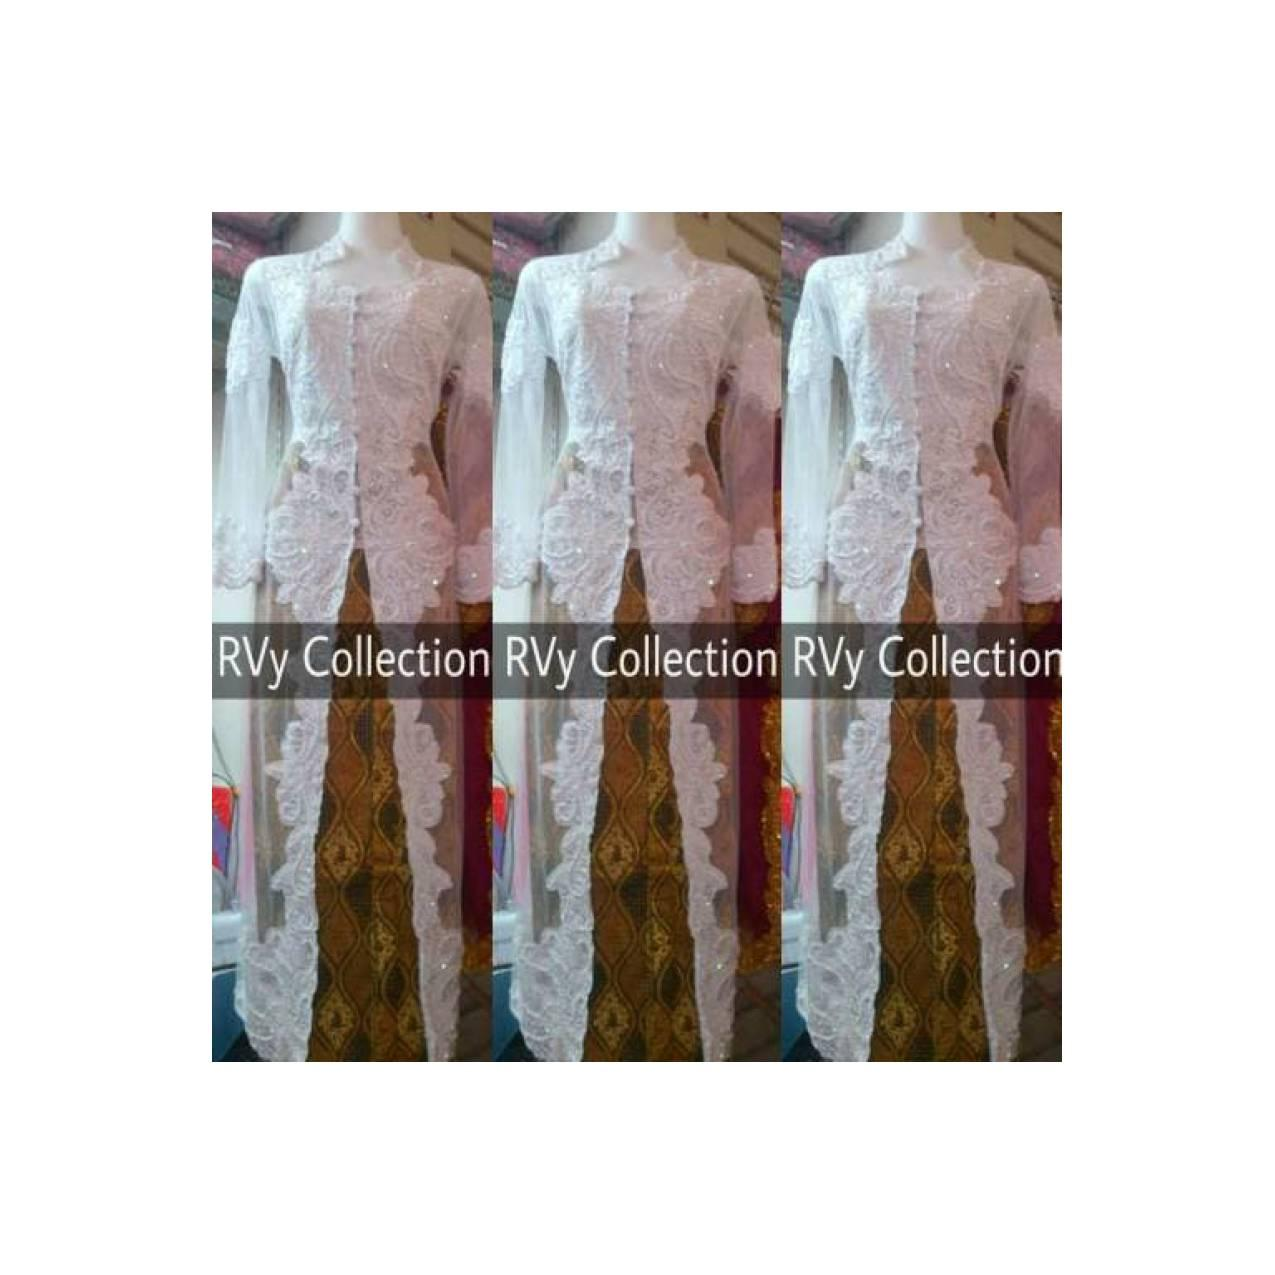 BAJU Abaya Set Kebaya Abaya Akad Nikah Muslim RVy Collection